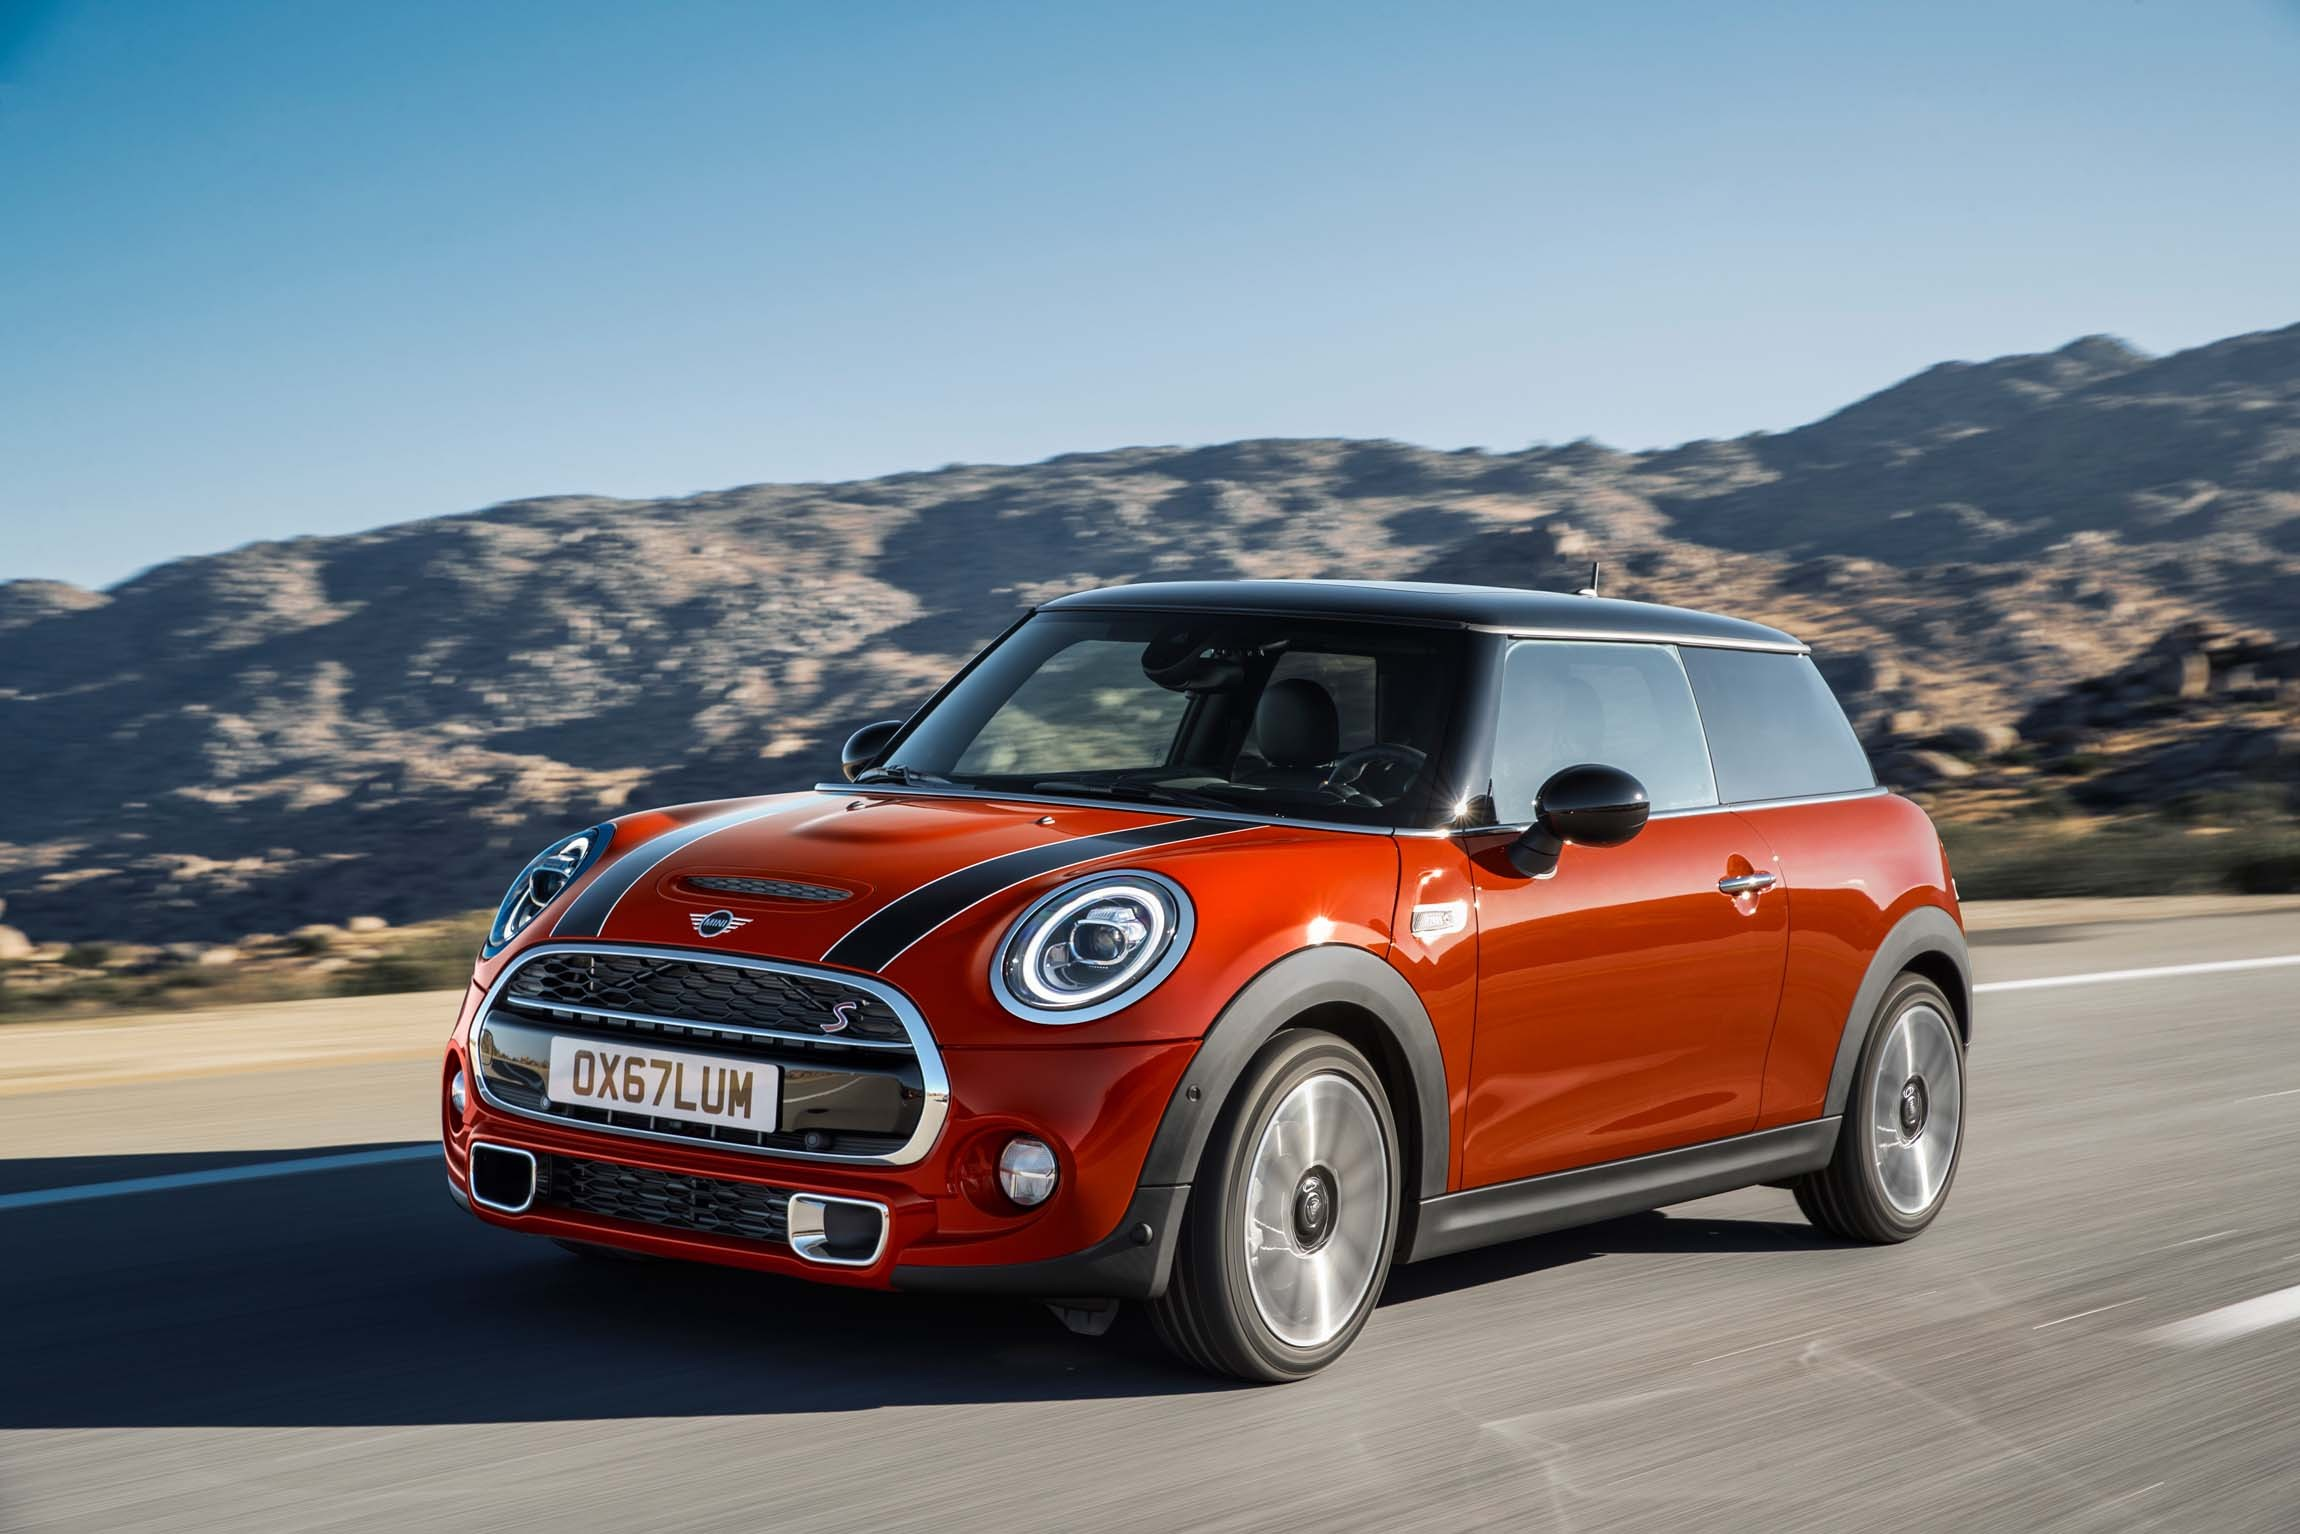 Mini Cooper One 2017 Engine Diagram 2019 Mini Cooper Review Ratings Specs Prices and S Of Mini Cooper One 2017 Engine Diagram